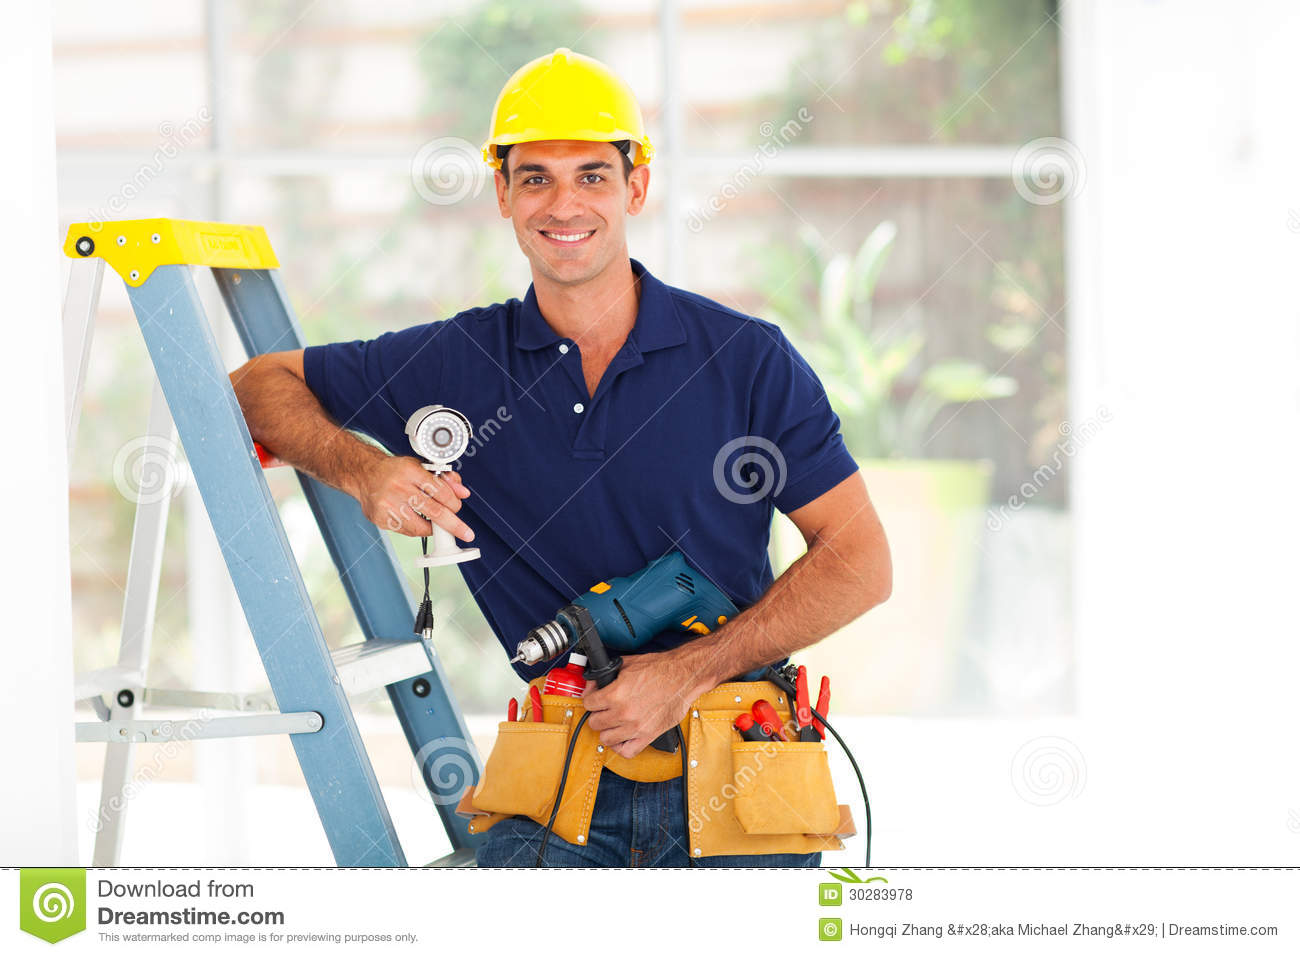 Cctv guy royalty free stock photos image 30283978 for Security camera placement tool